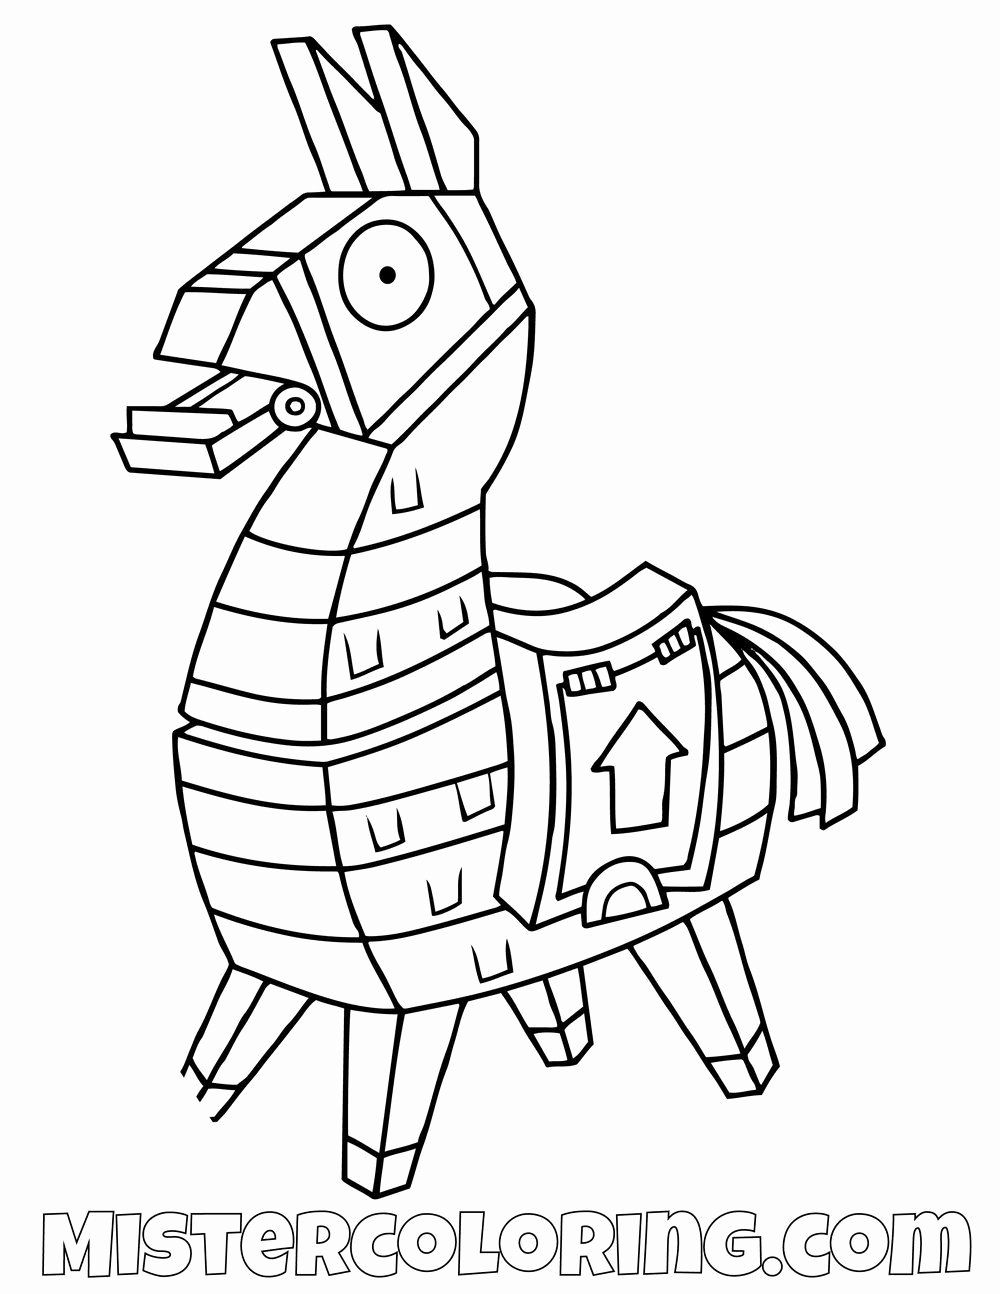 28 Fortnite Llama Coloring Page In 2020 Toy Story Coloring Pages